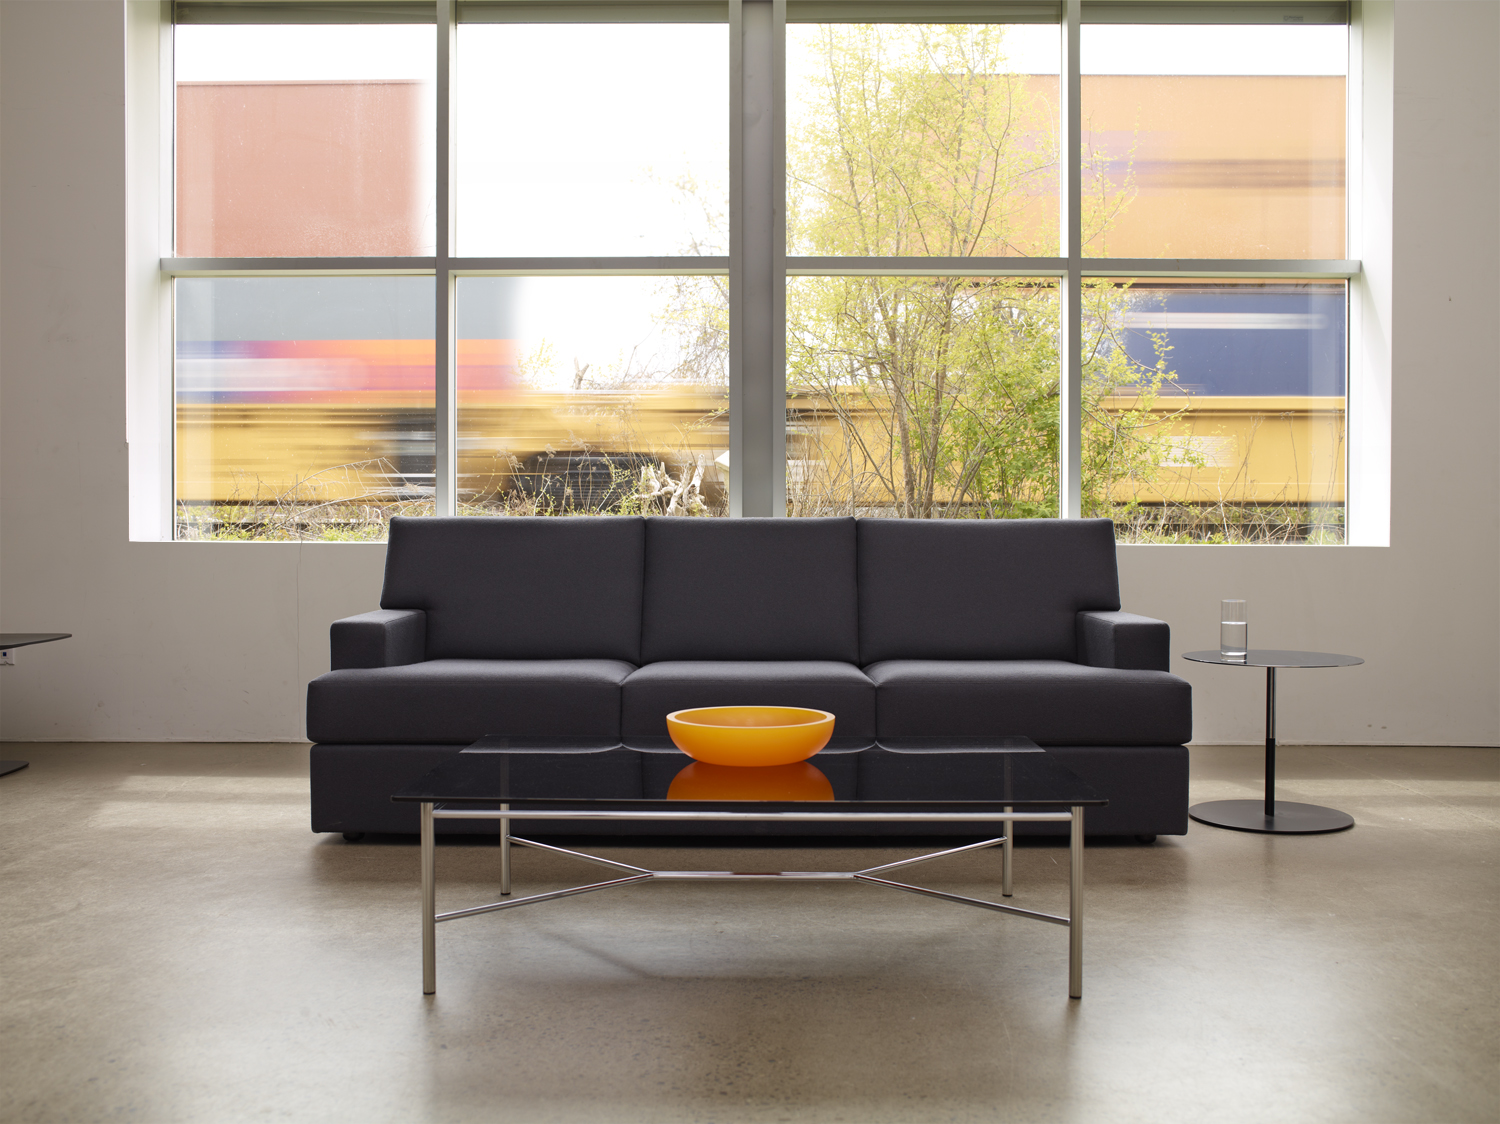 Phenomenal Ballantrae A New Lounge Series By Keilhauer Offers Classic Andrewgaddart Wooden Chair Designs For Living Room Andrewgaddartcom